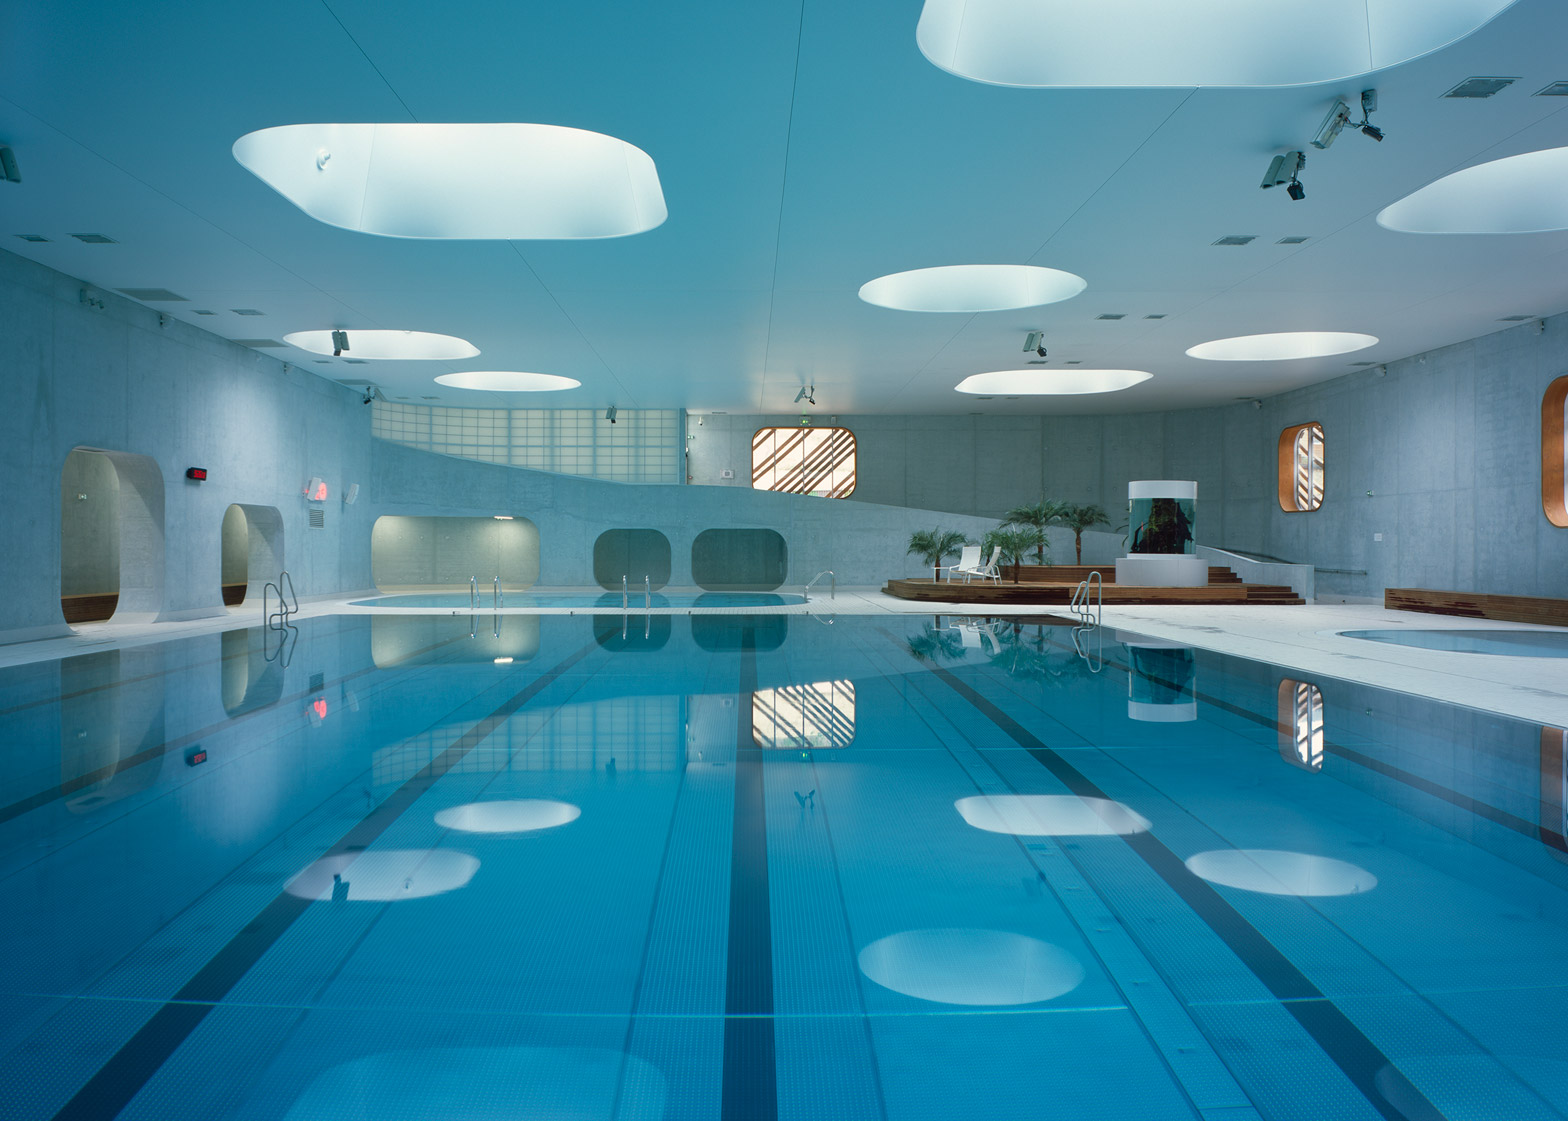 Piscine issy les moulineaux paris swimming pool e architect - Rooftop swimming pool designing and planning ...